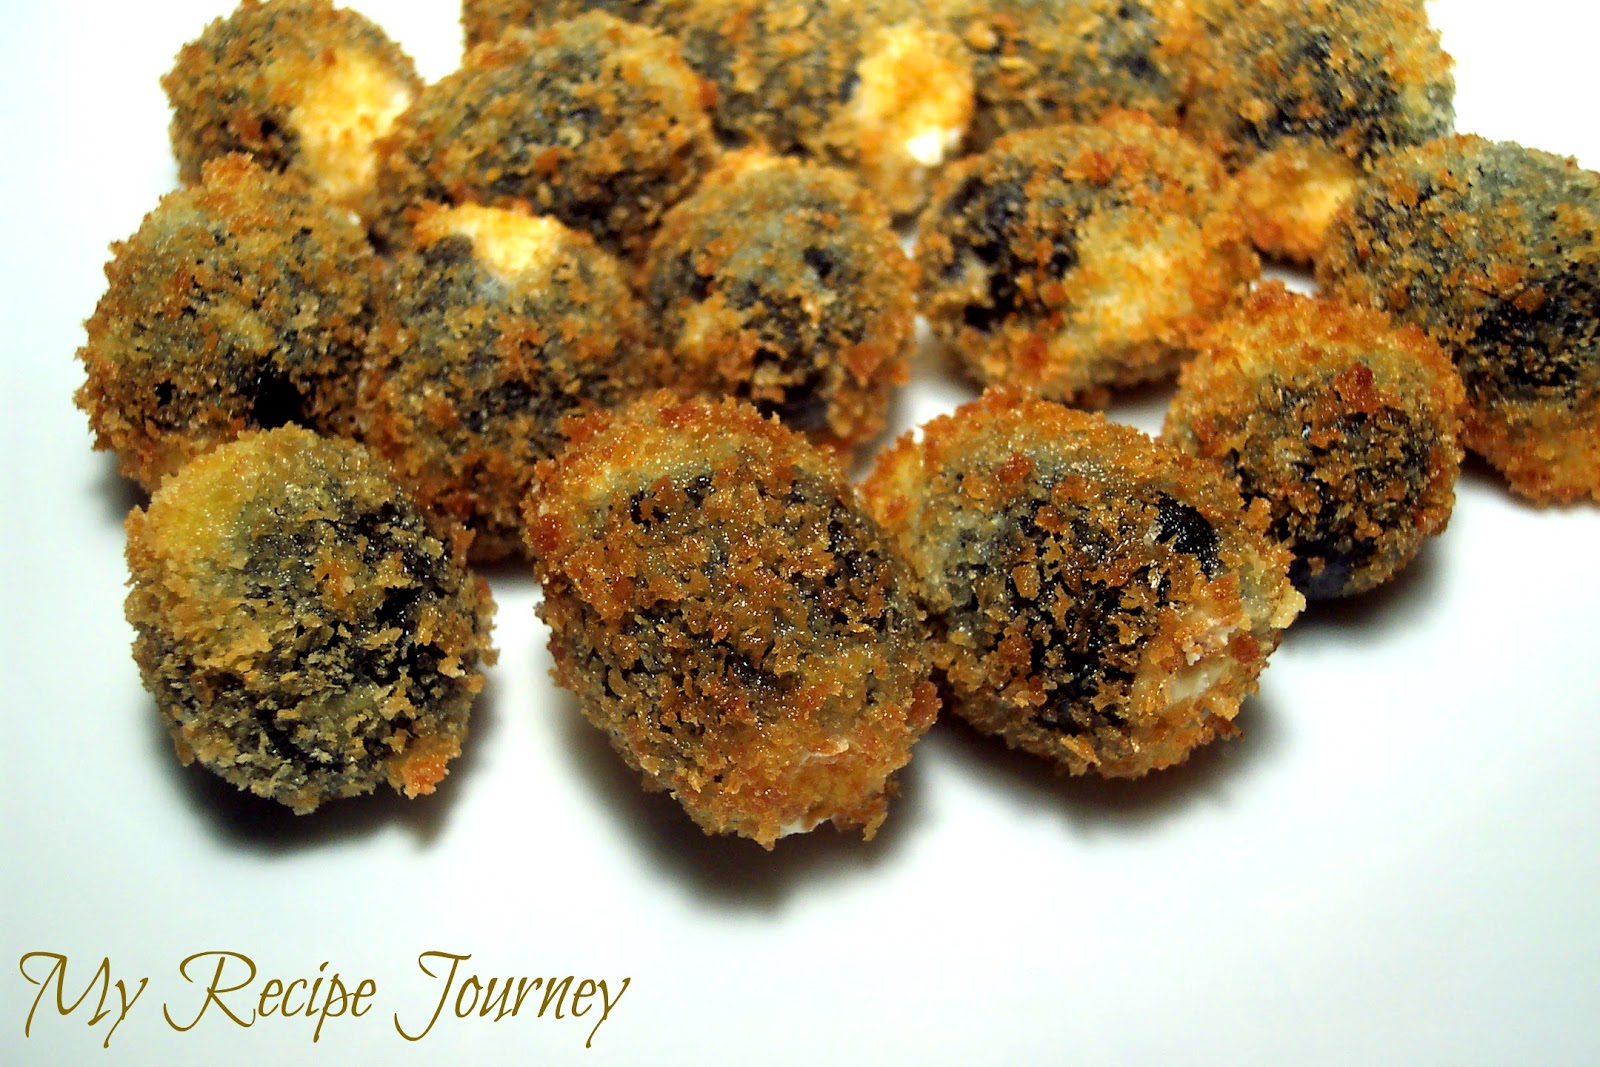 My Recipe Journey: Fried Stuffed Olives